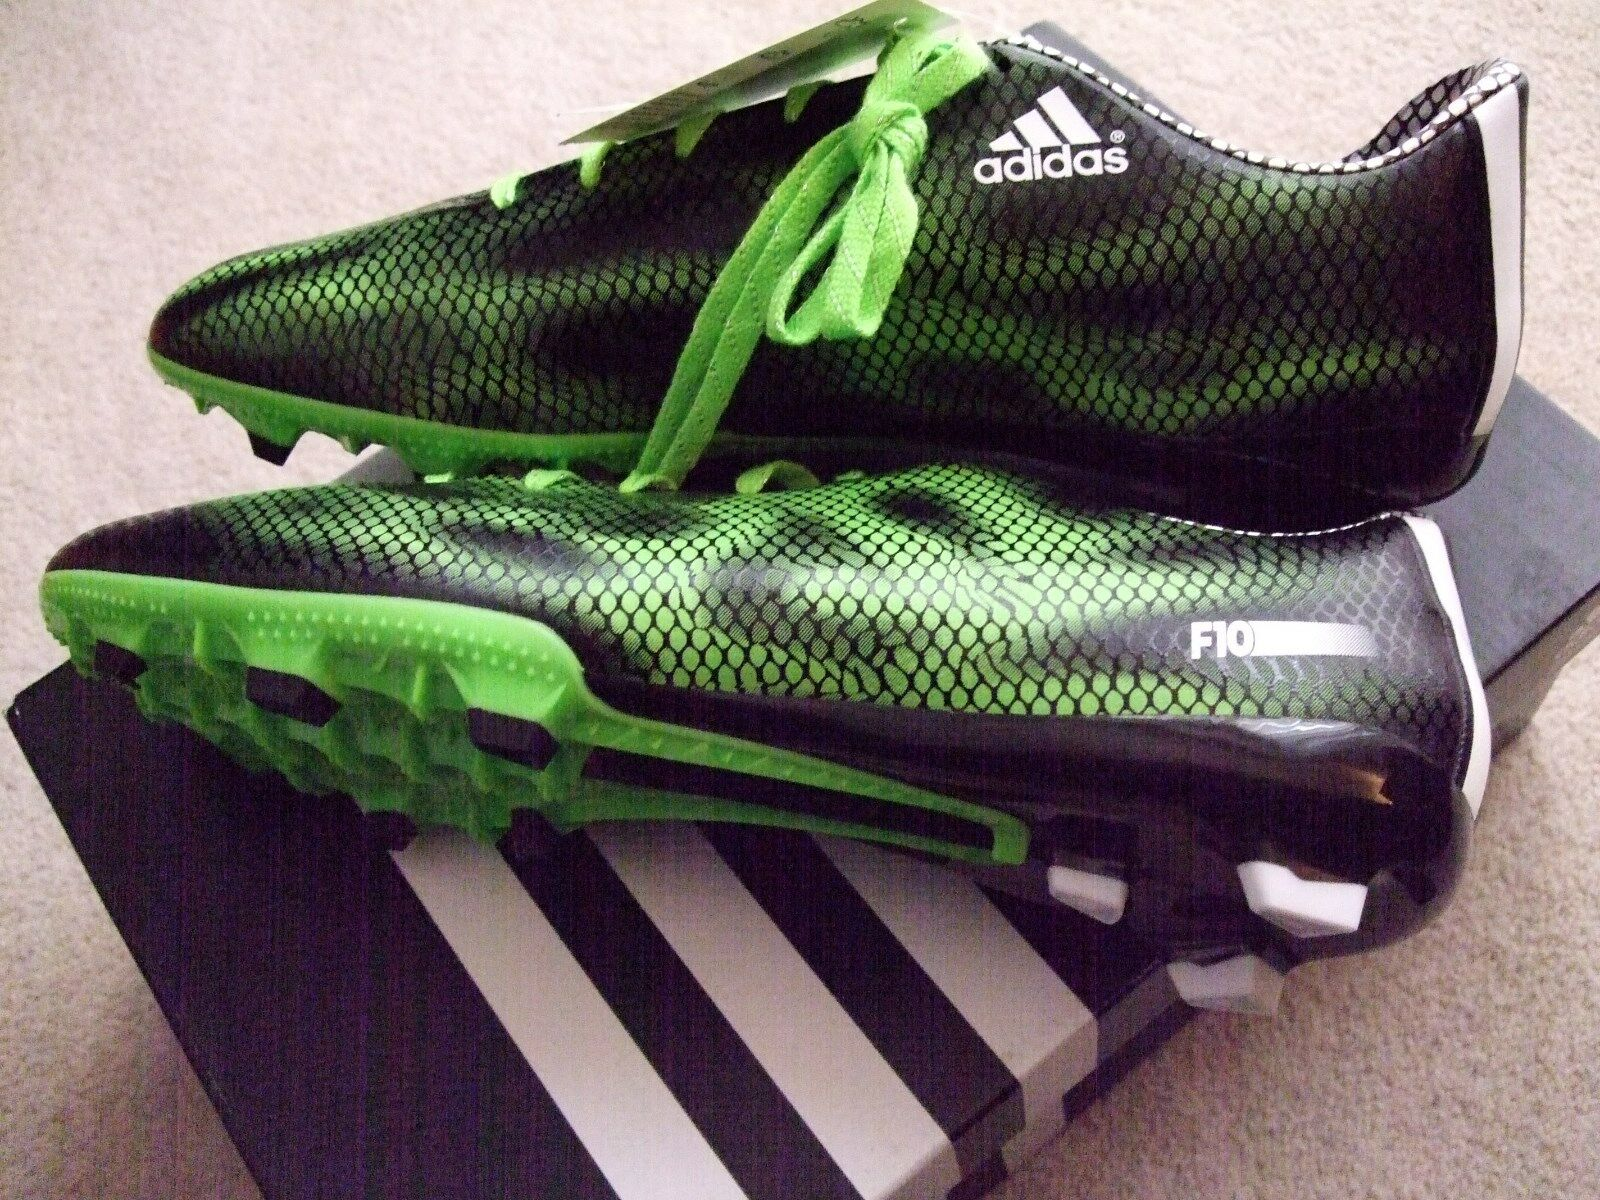 adidas mens size f 10 fg football/soccer boots. Price reduction Seasonal price cuts, discount benefits